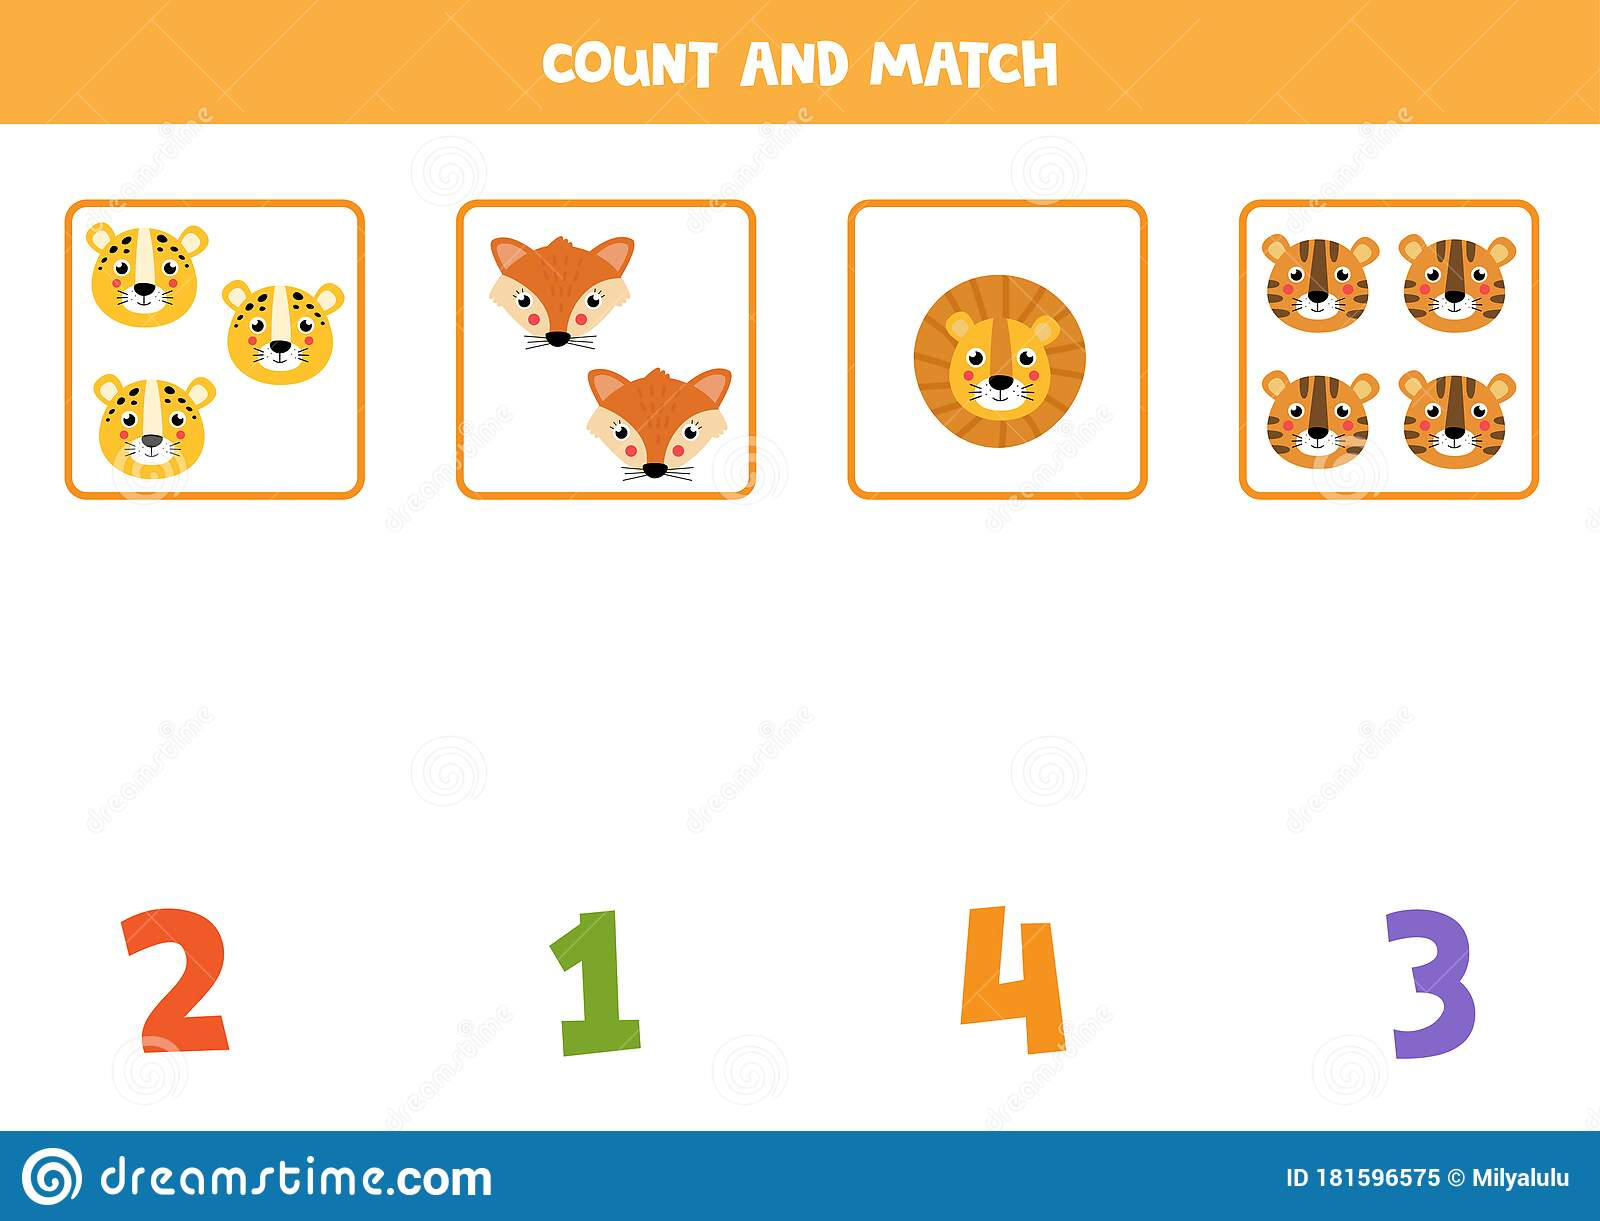 Math Worksheet For Kids Counting Game With Cute Animal